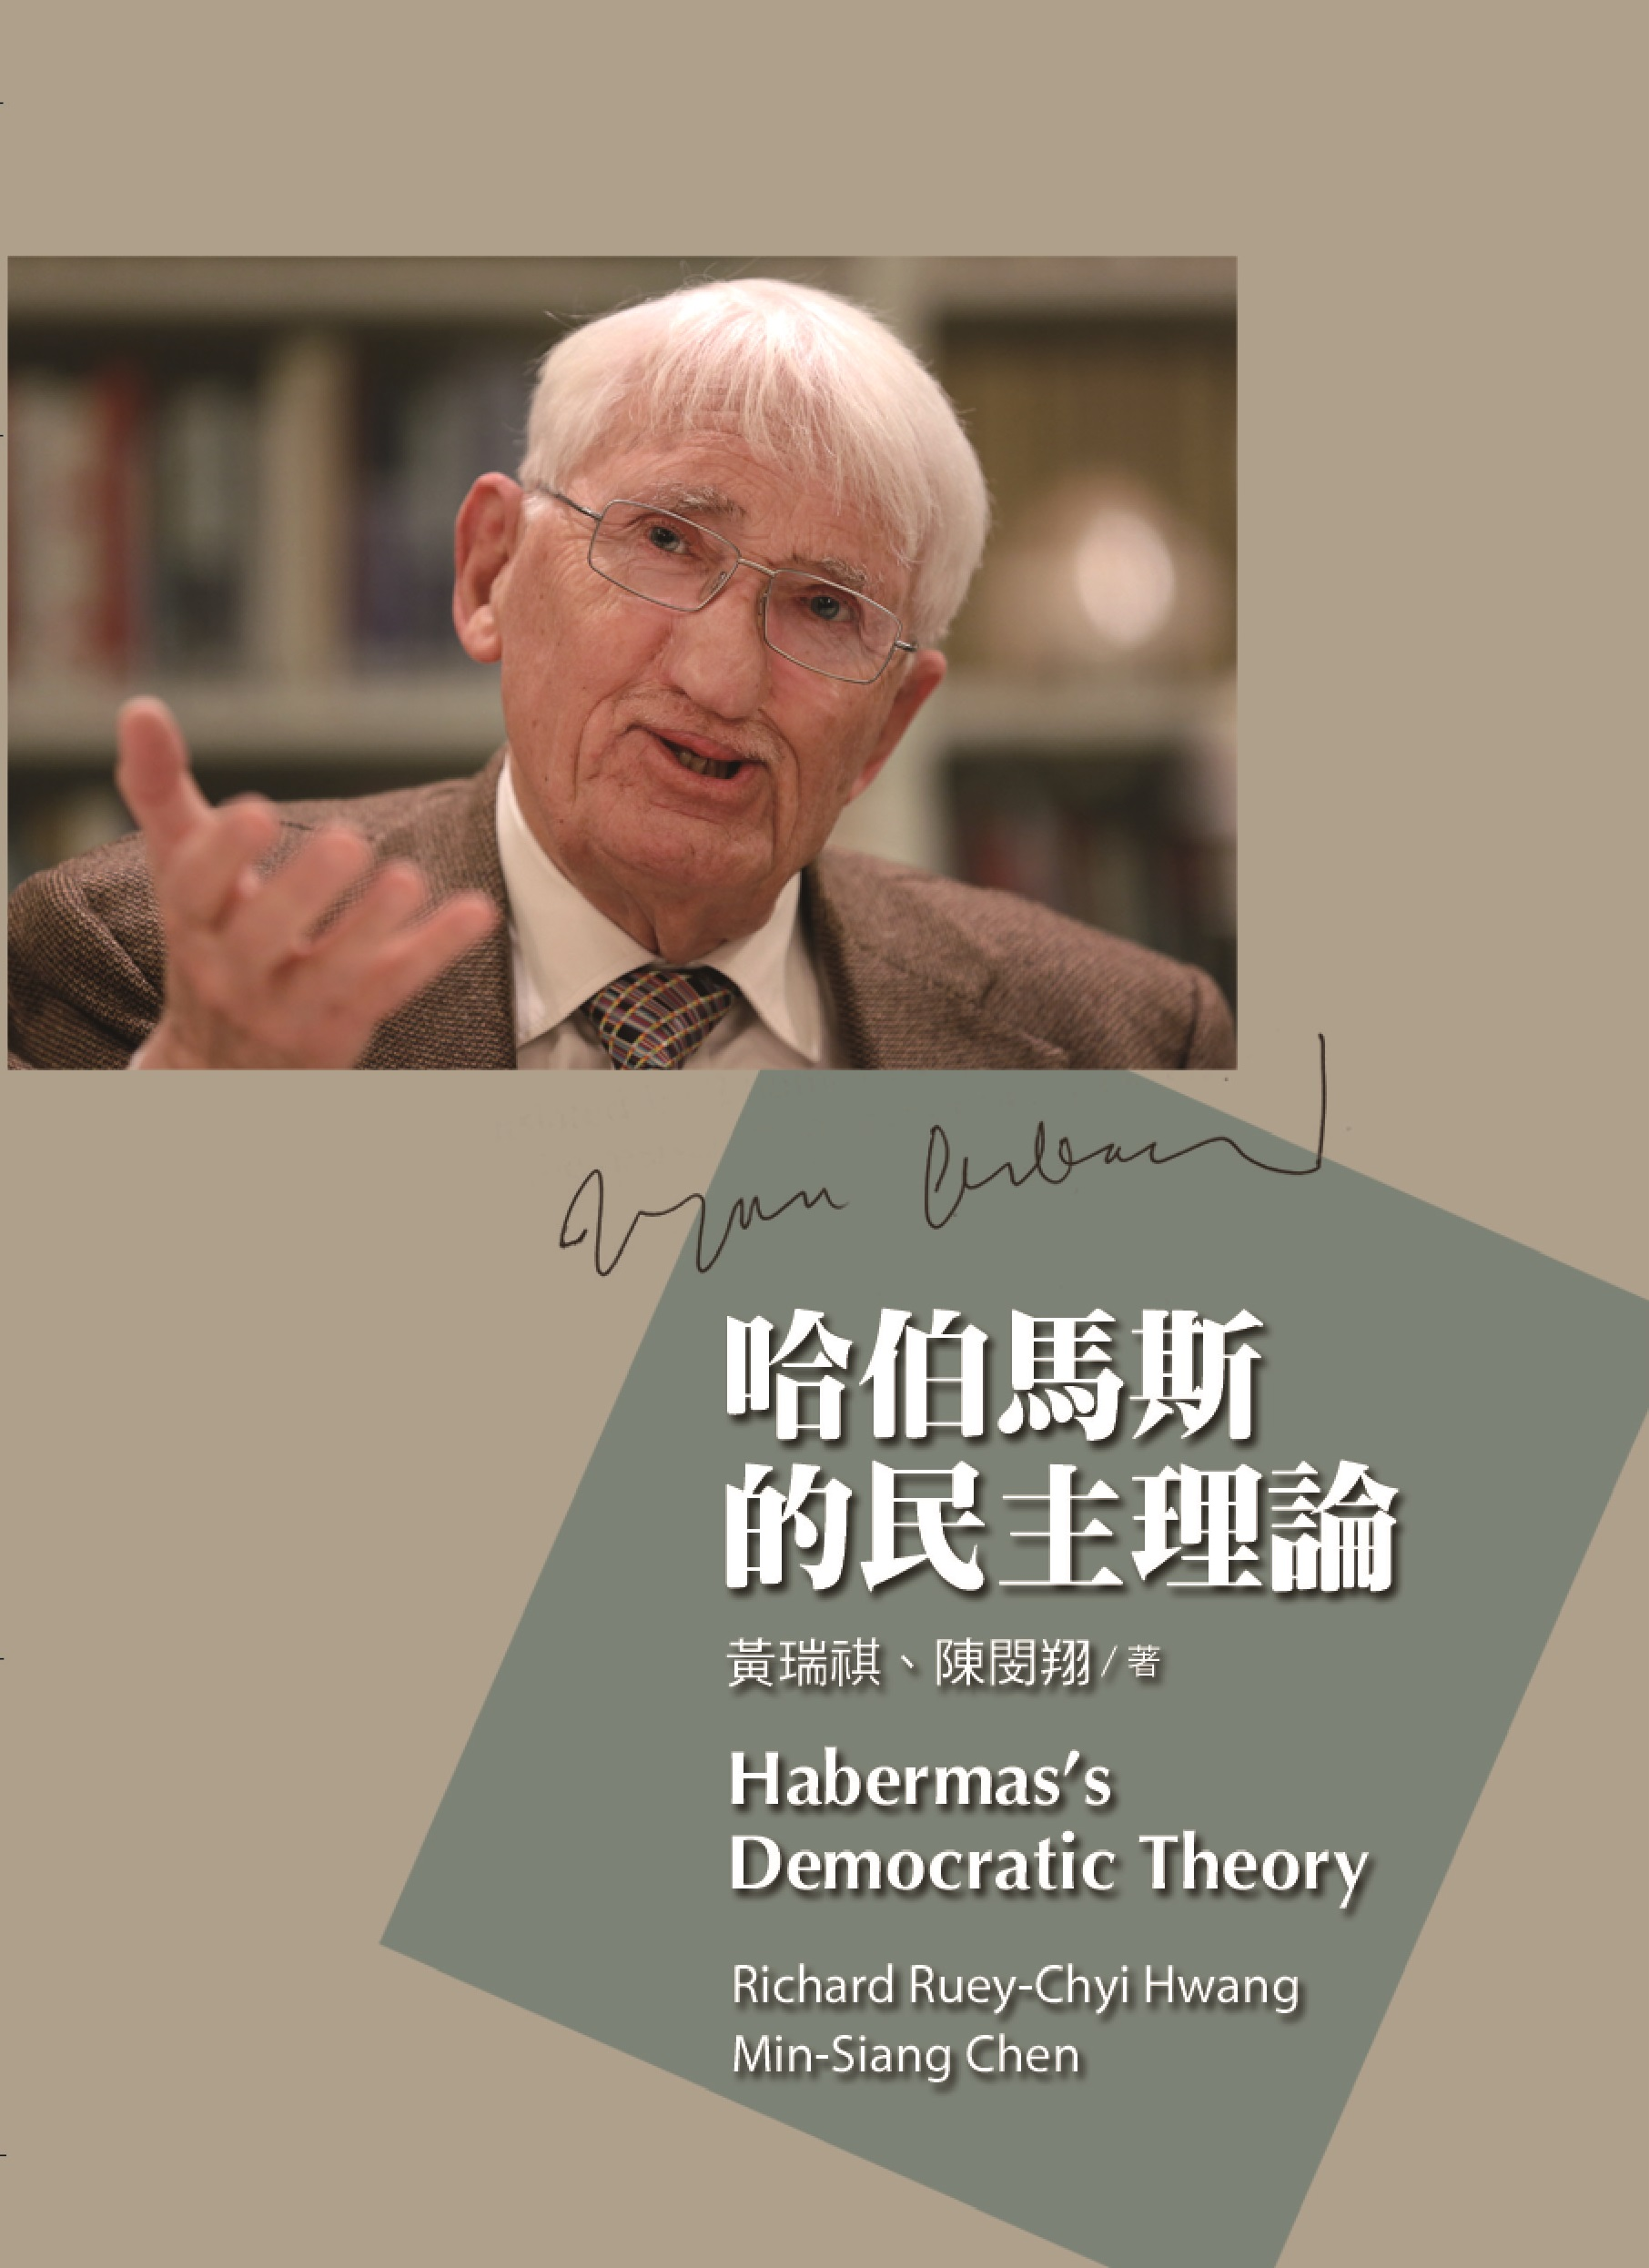 Habermas's Democratic Theory